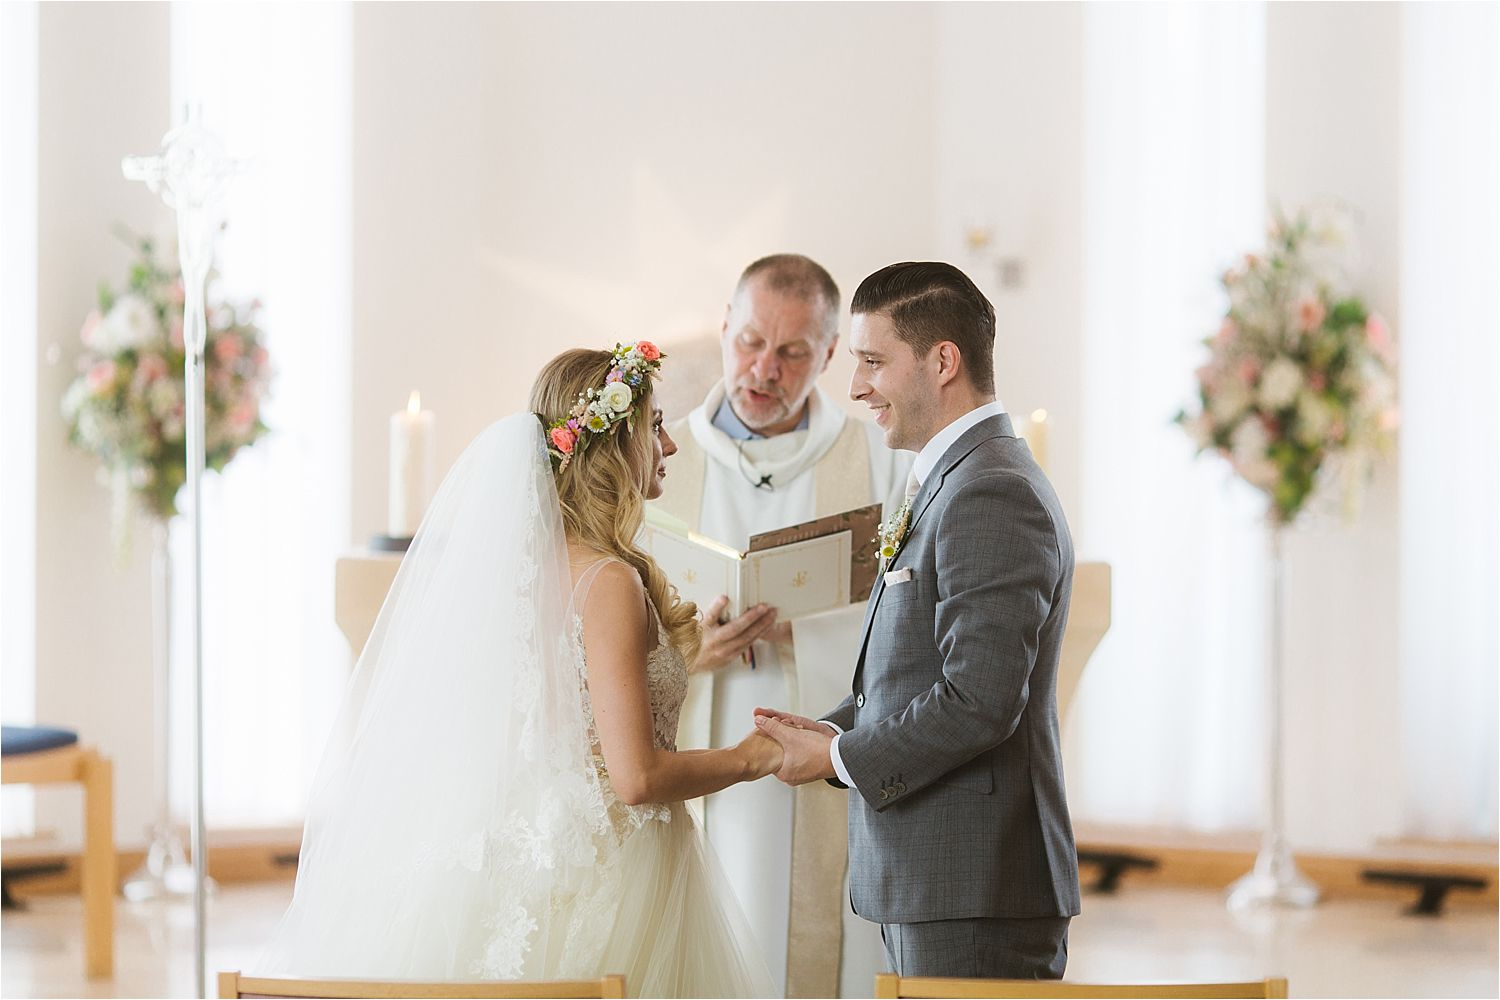 Bride and groom face each other and say their vows at their Sandhole Oak Barn wedding